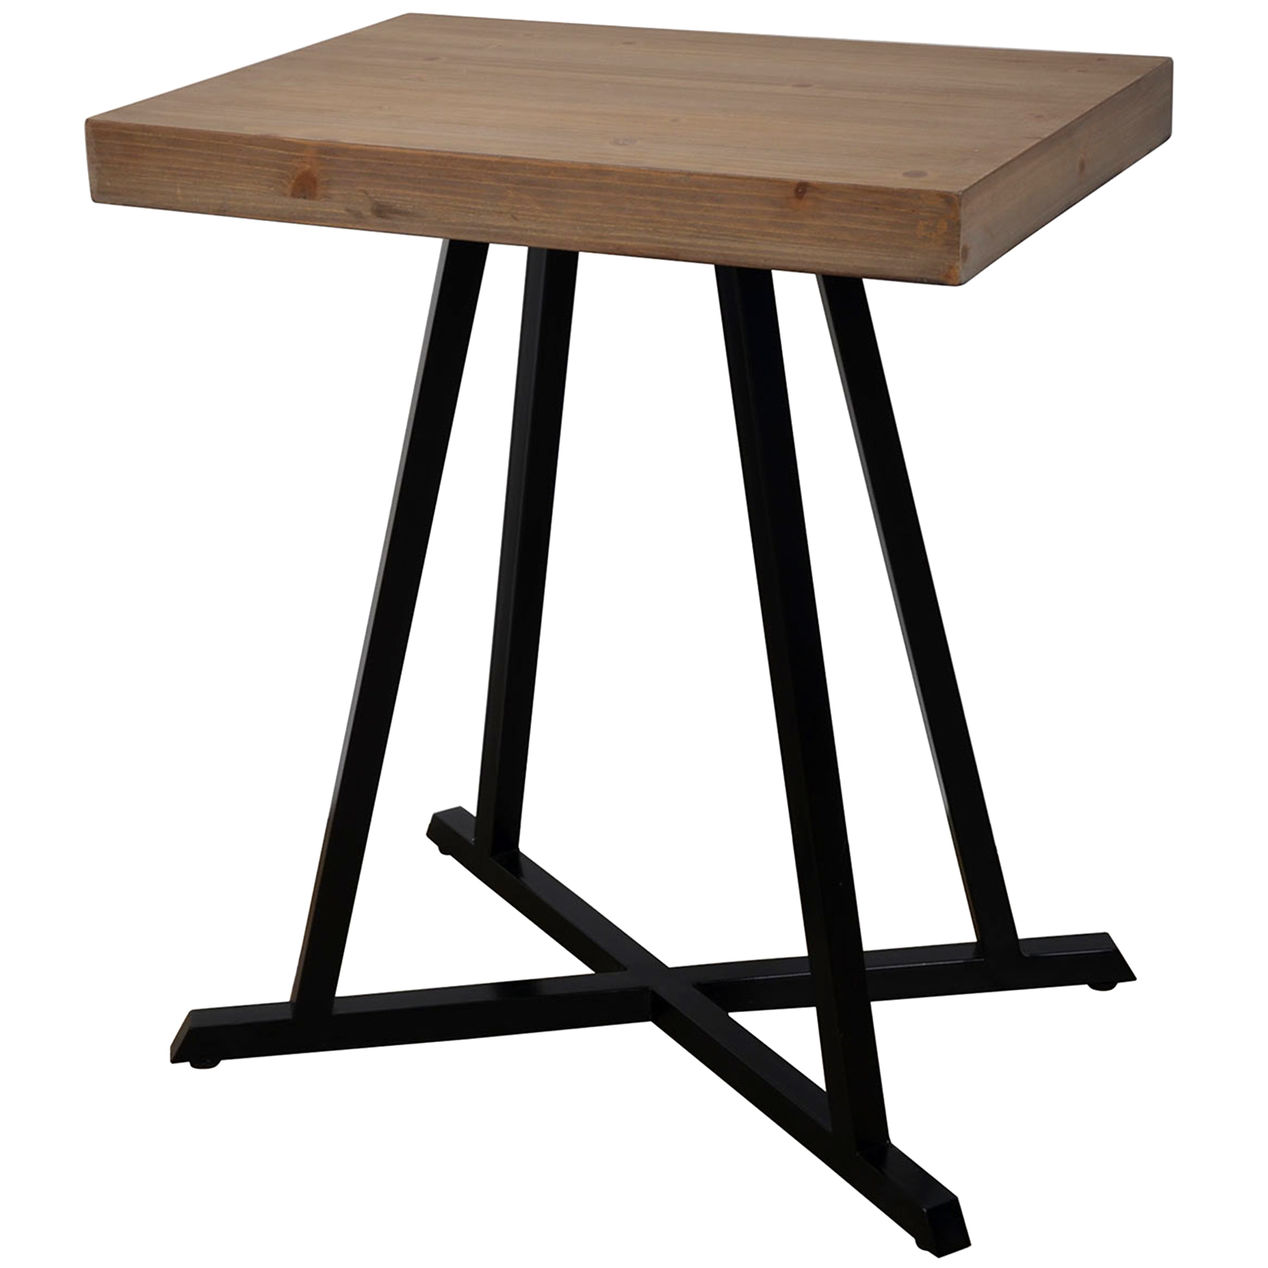 industrial cross base accent table home pottery barn and chairs for toddlers round nesting end tables metal with drawers outdoor seating antique oak value lamp usb port lucite